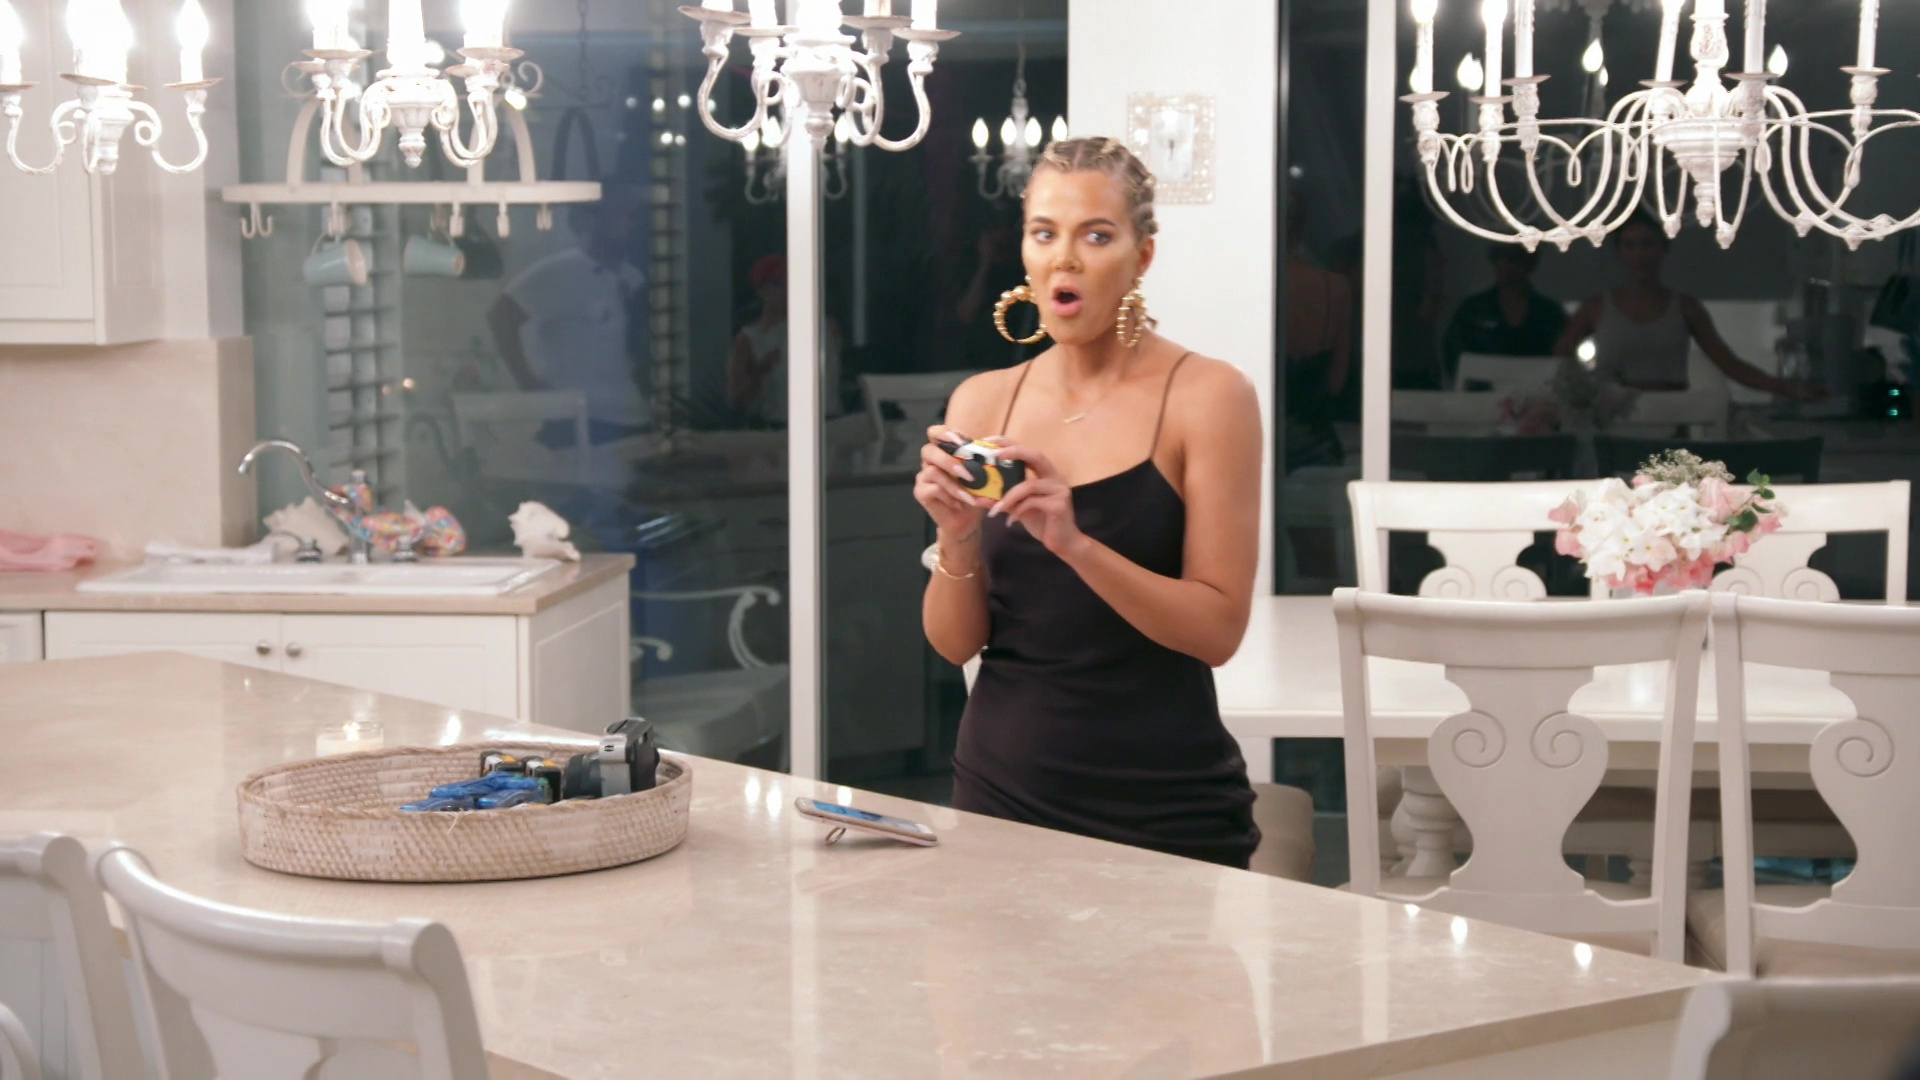 Khloe Kardashian Fansite vlcsnap-2019-10-21-22h06m19s877 Keeping Up With The Kardashians – Episode 17.06 Psalm West – Video streaming, Caps & Ratings